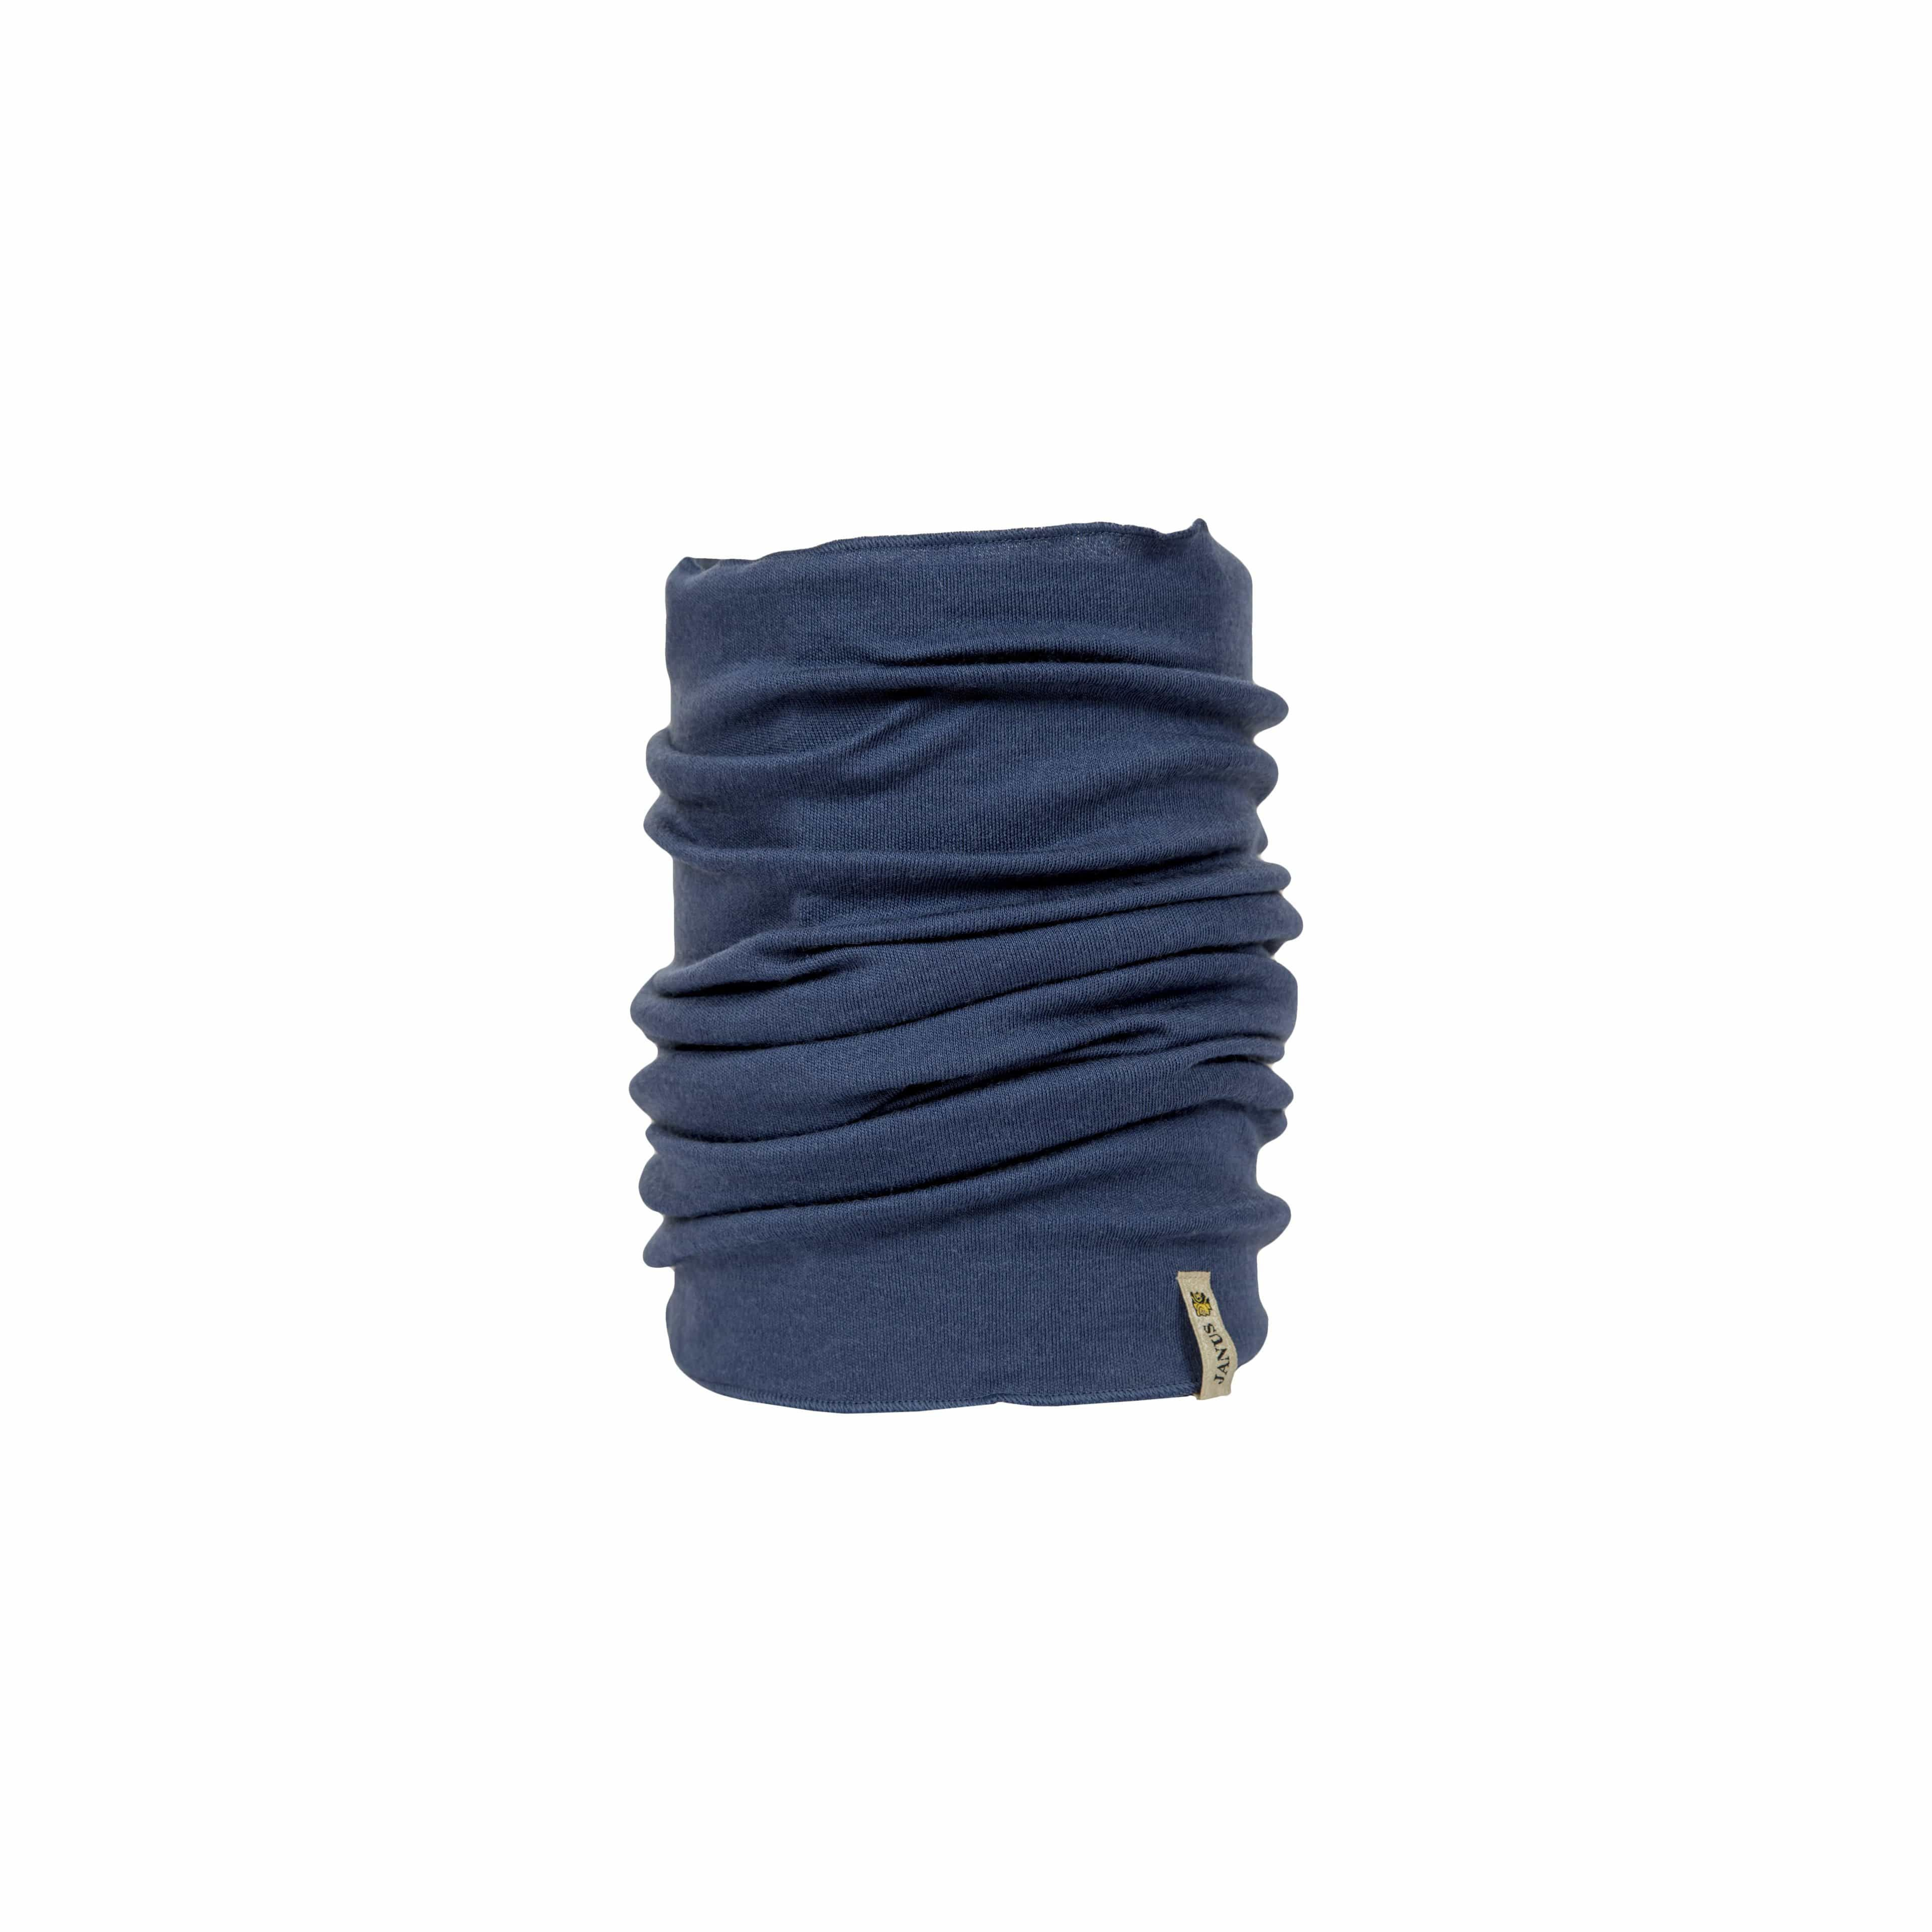 Merino wool neck scarf for adults. 100% Merino wool. Thickness: 215 g / m2 One size. Machine wash on wool or delicate setting. Air dry.